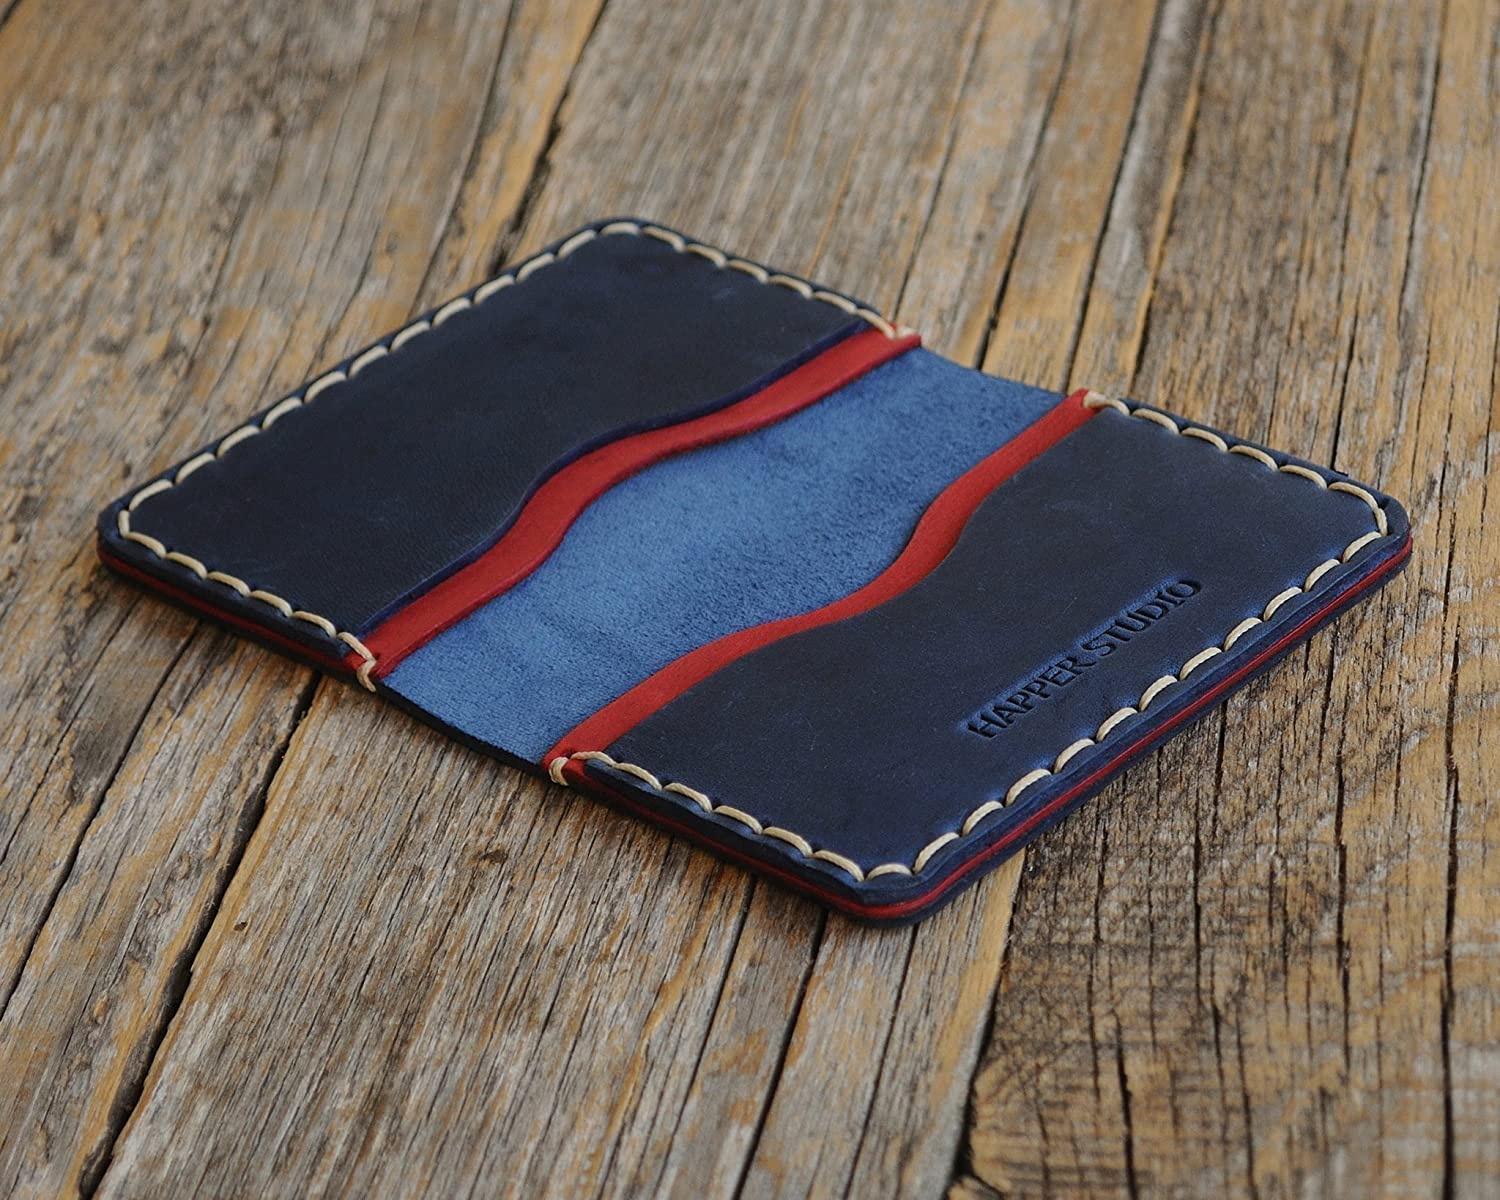 Blue and Red Credit Card Rustic Style Unisex Pouch Personalised Leather Wallet Cash or ID Holder Monogram your Name or Initials